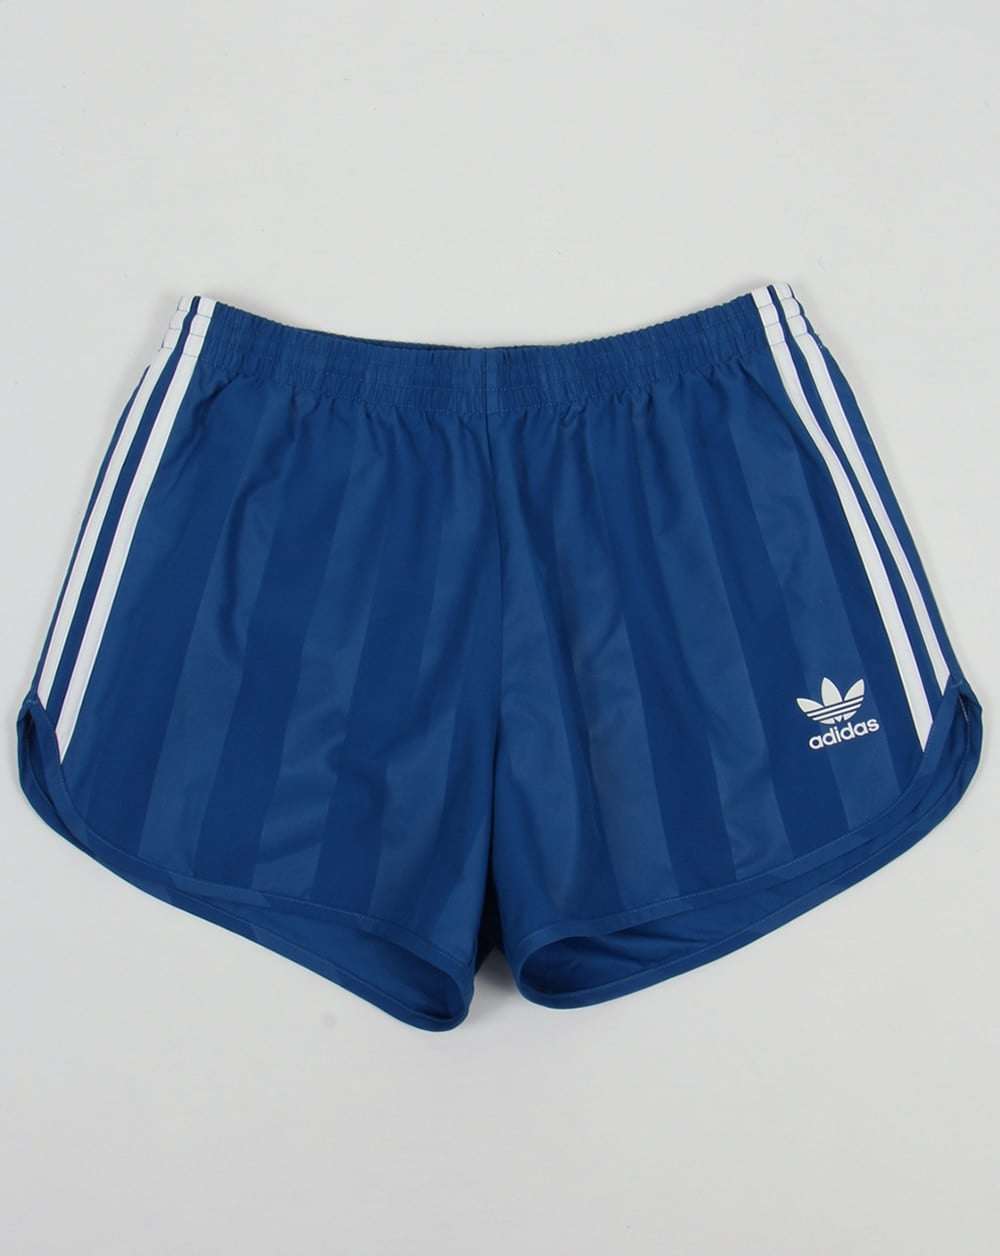 Adidas Originals Football Shorts Royal Blue - eqt - Adidas ...